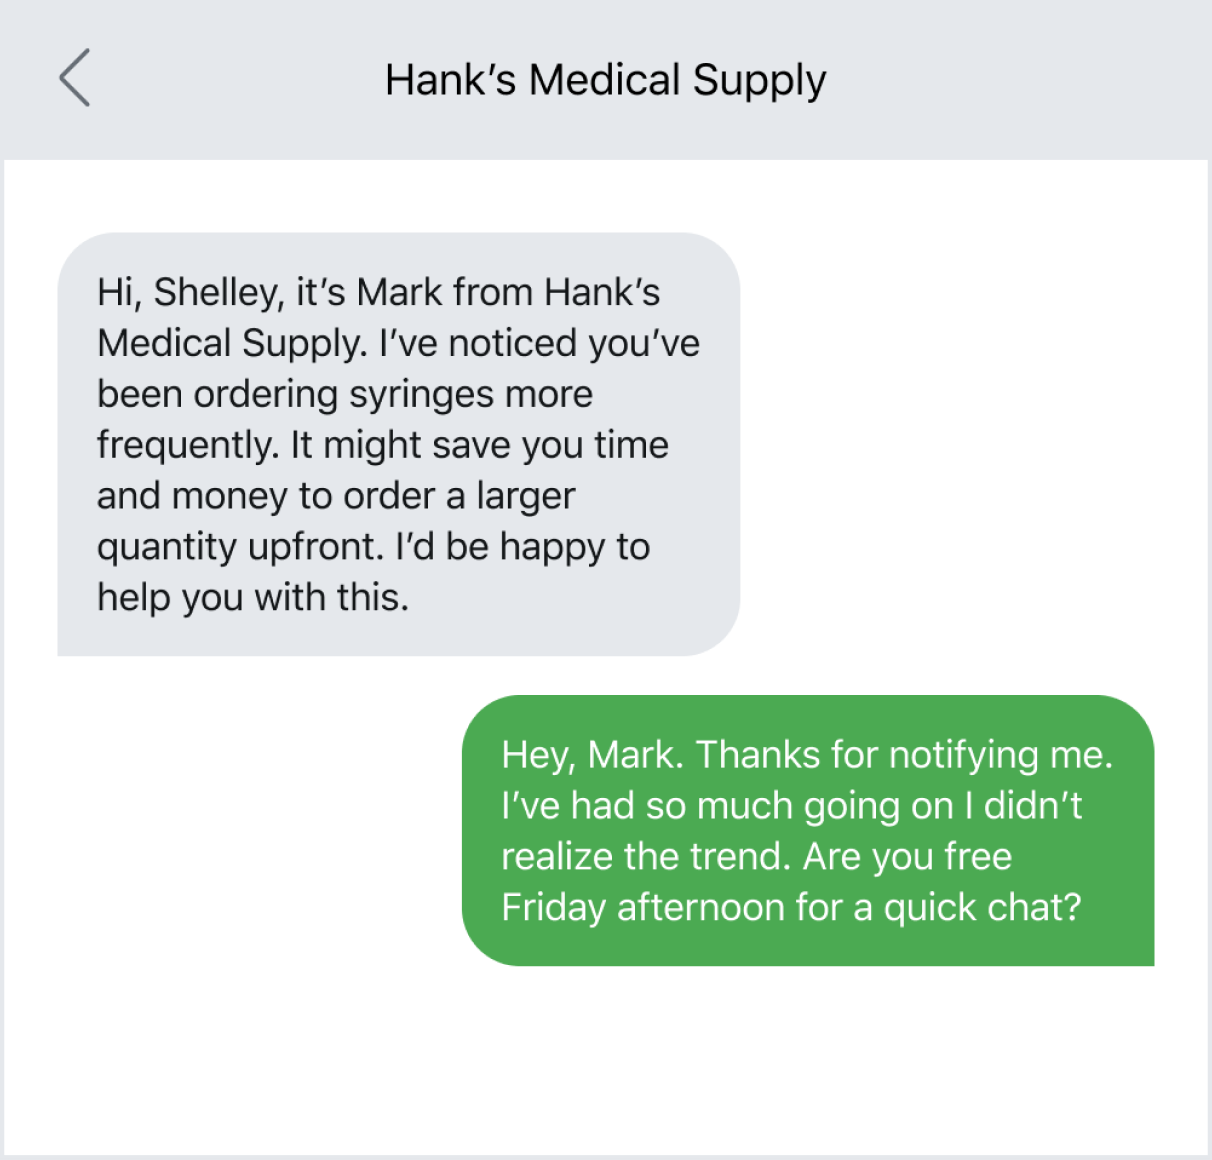 Keeping a pulse on customers via text